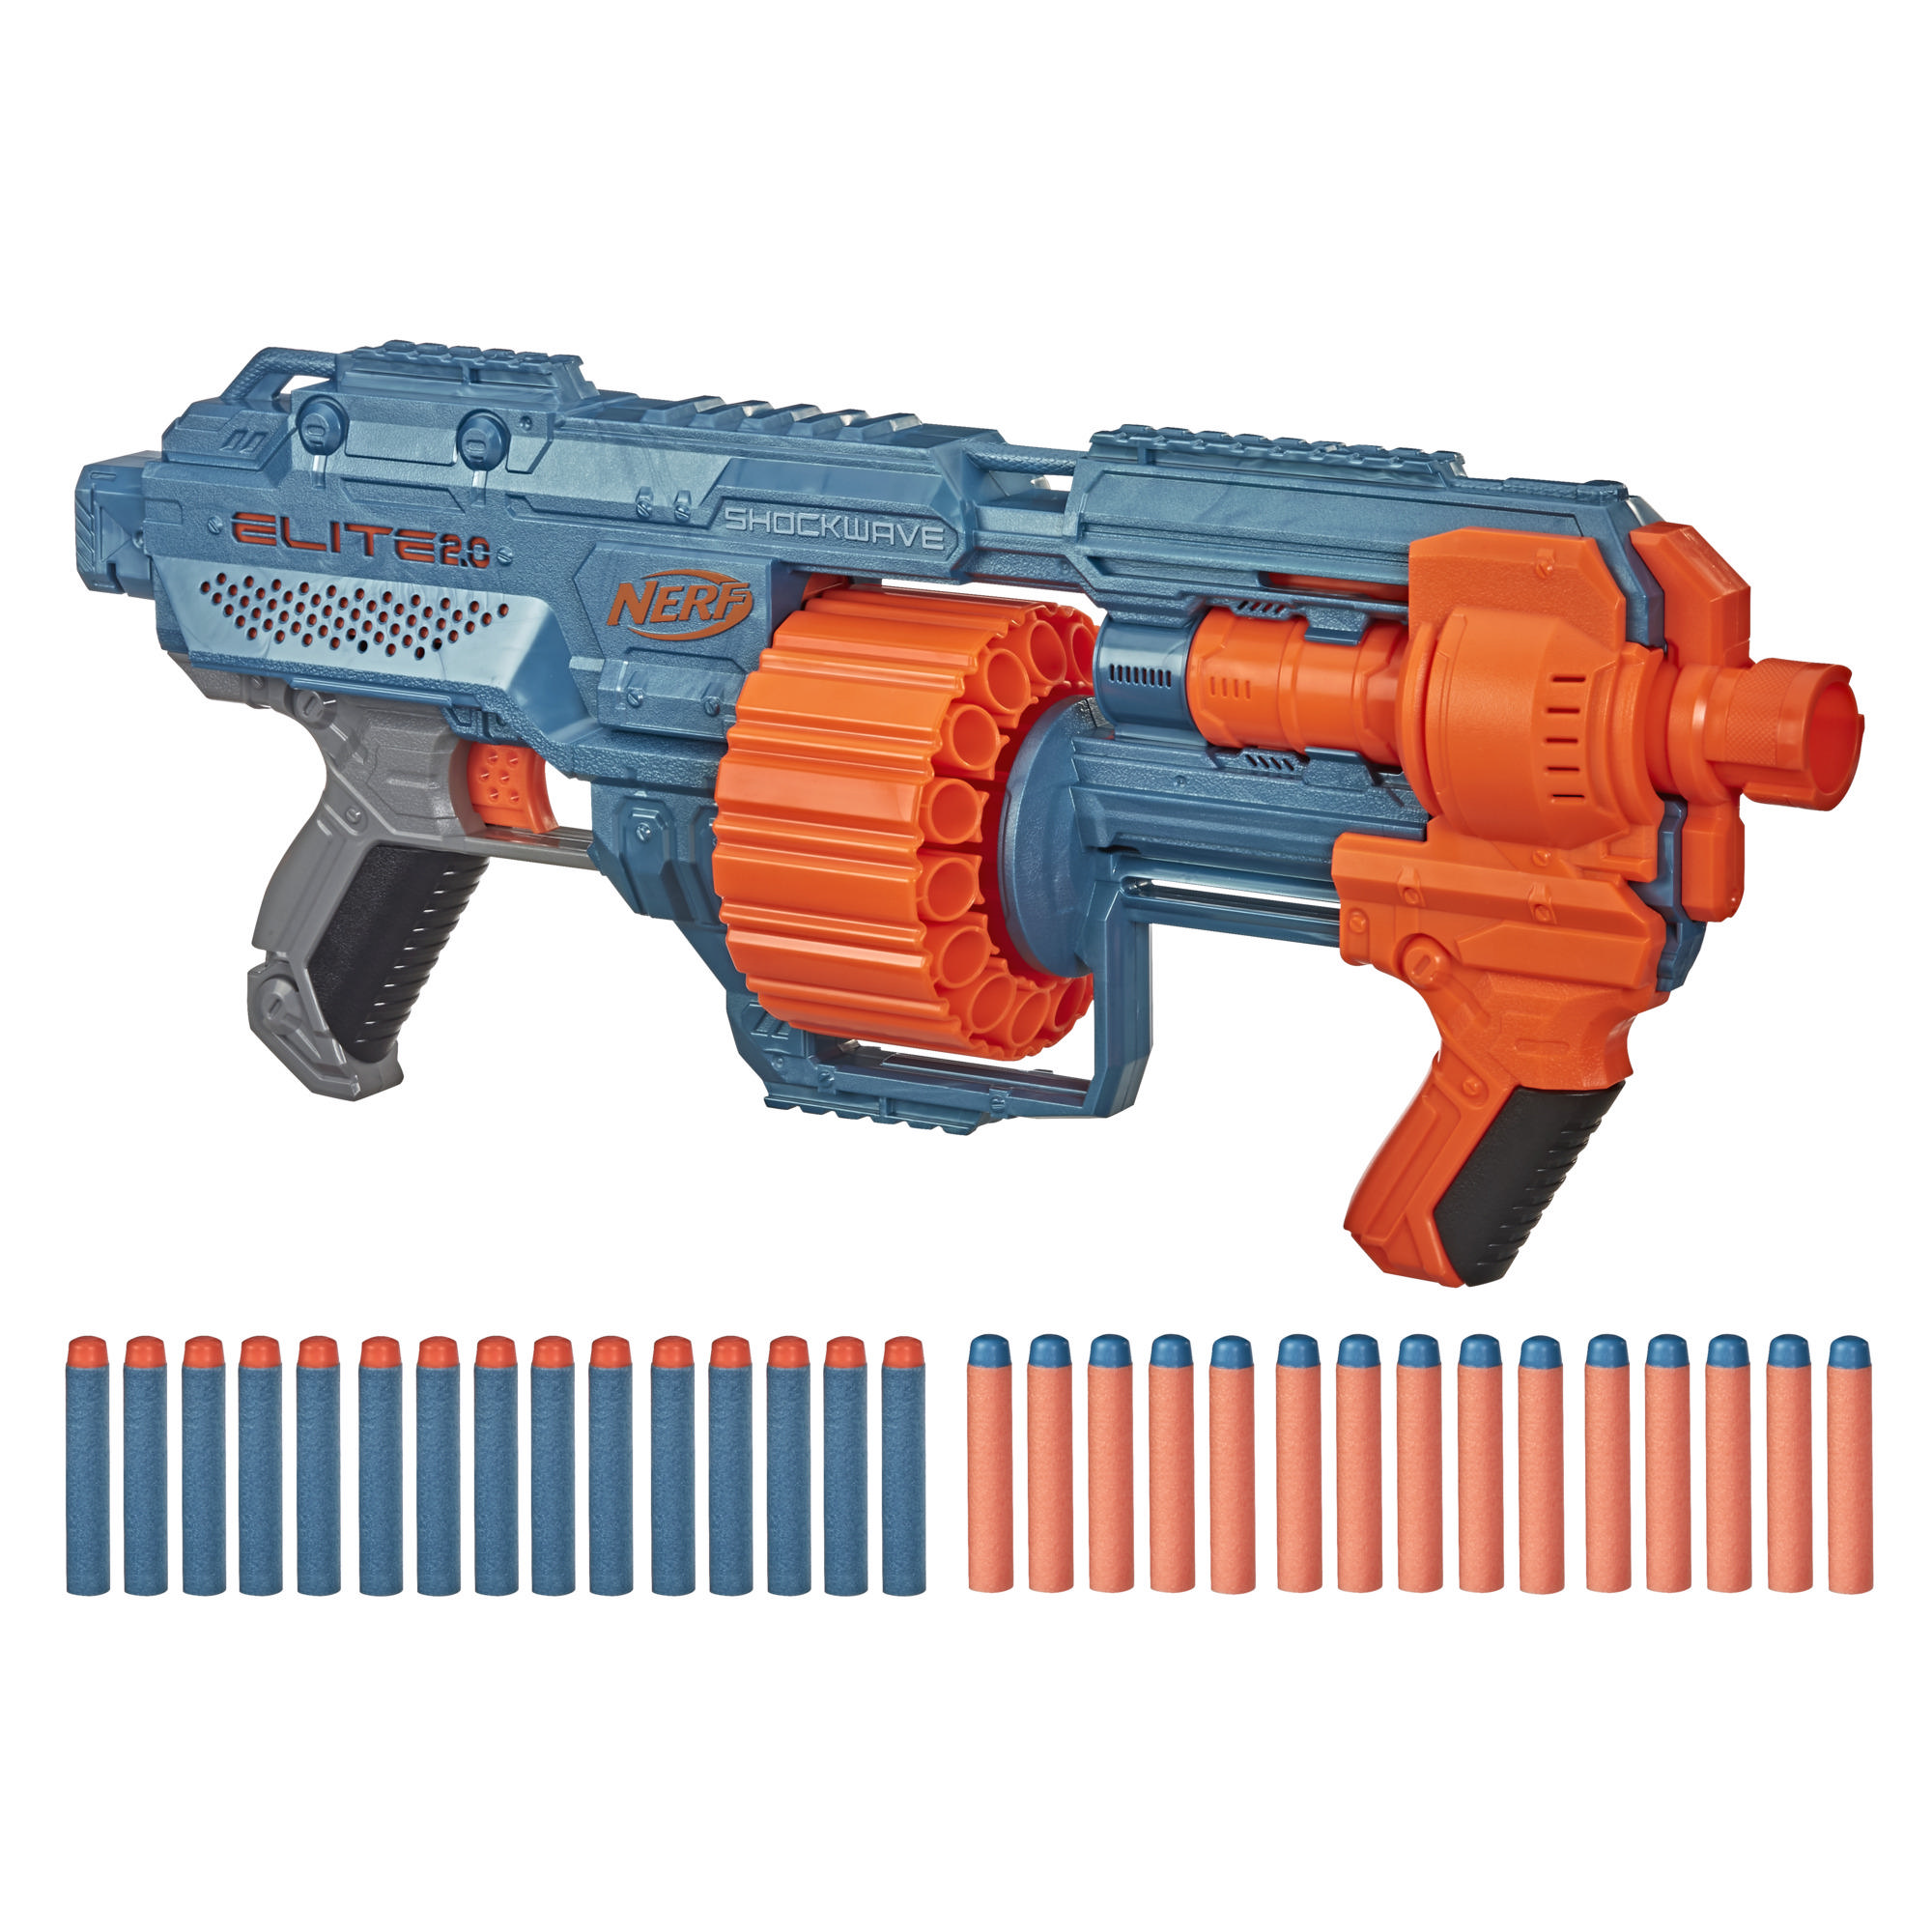 NERF Elite Shockwave